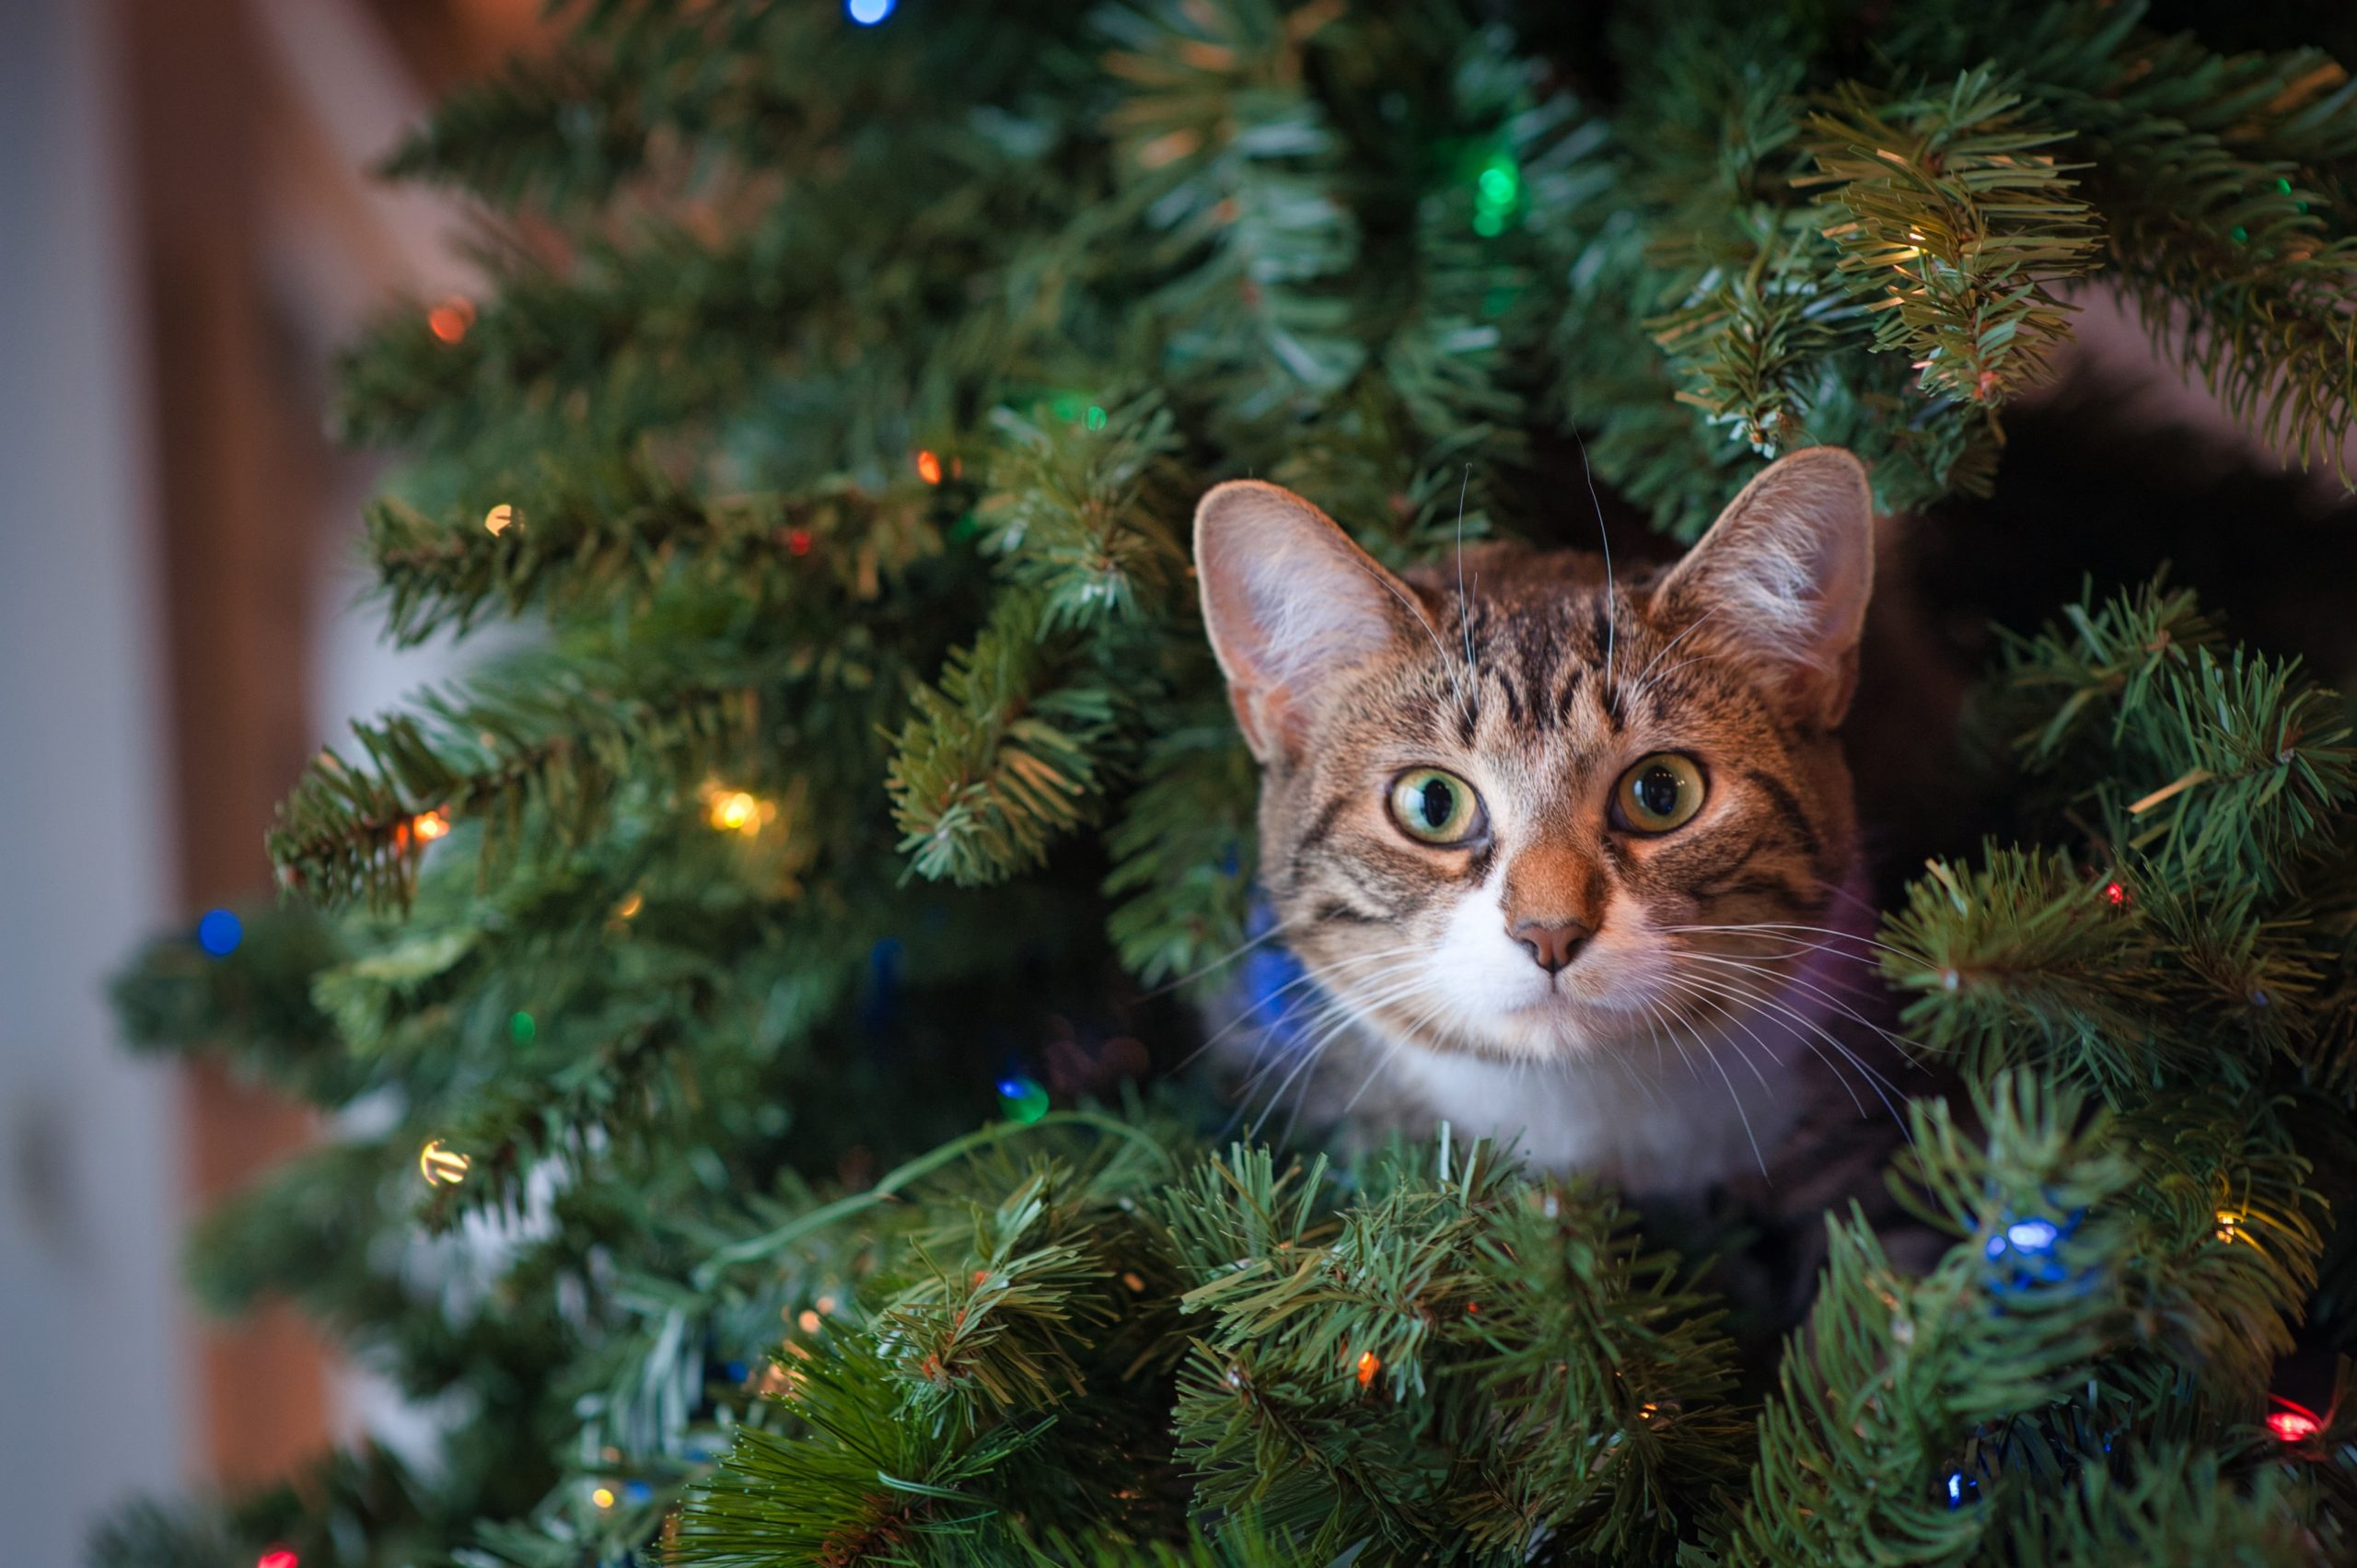 Holiday Plants Could Kill Your Pet Toxic Plants To Avoid And Safe Substitutes Holiday Houseplants Pet Friendly Vs Toxic Plants Gardenstead